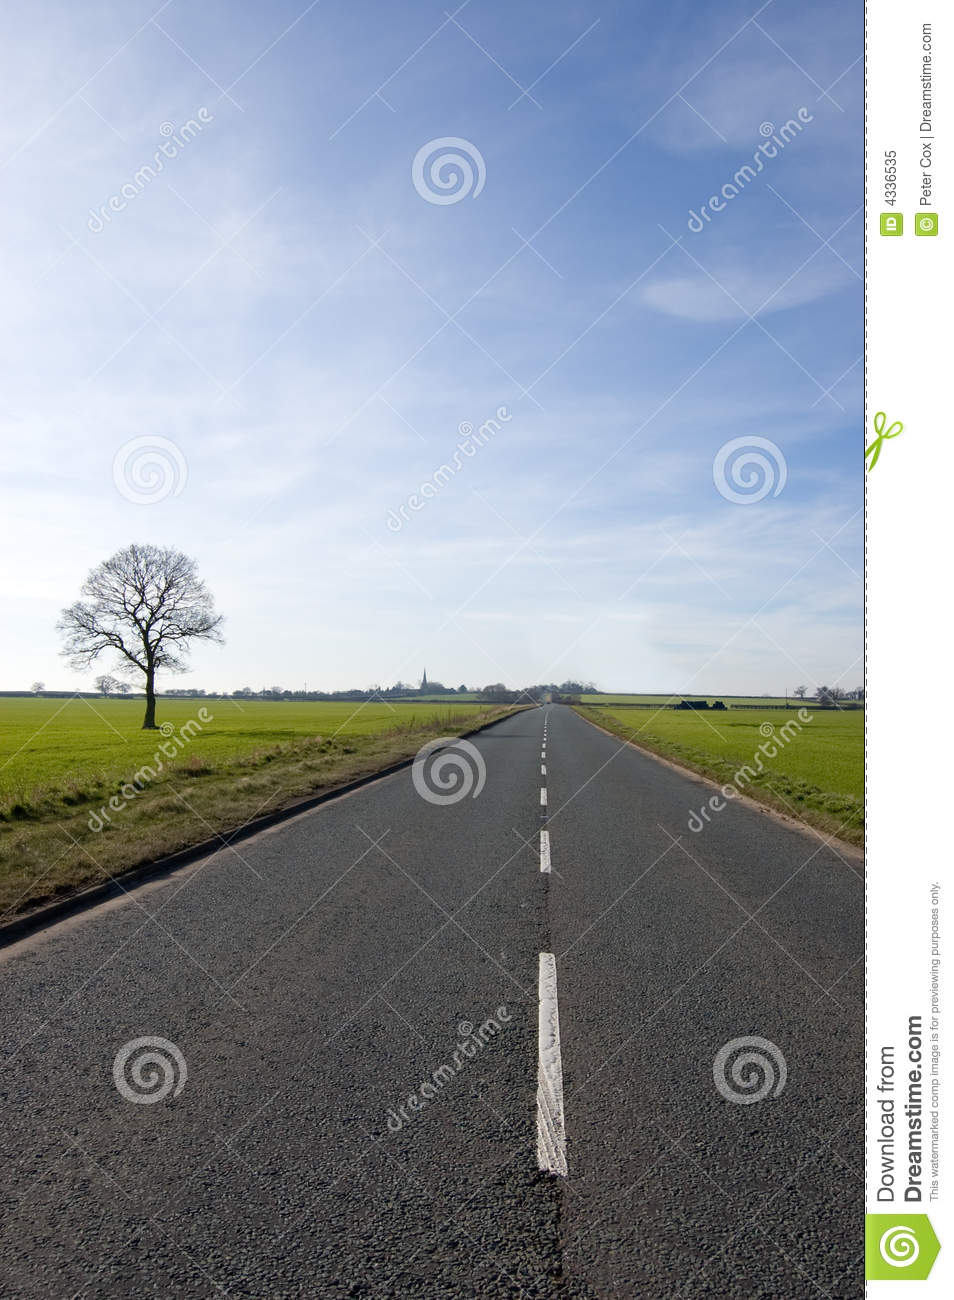 Tree and long road